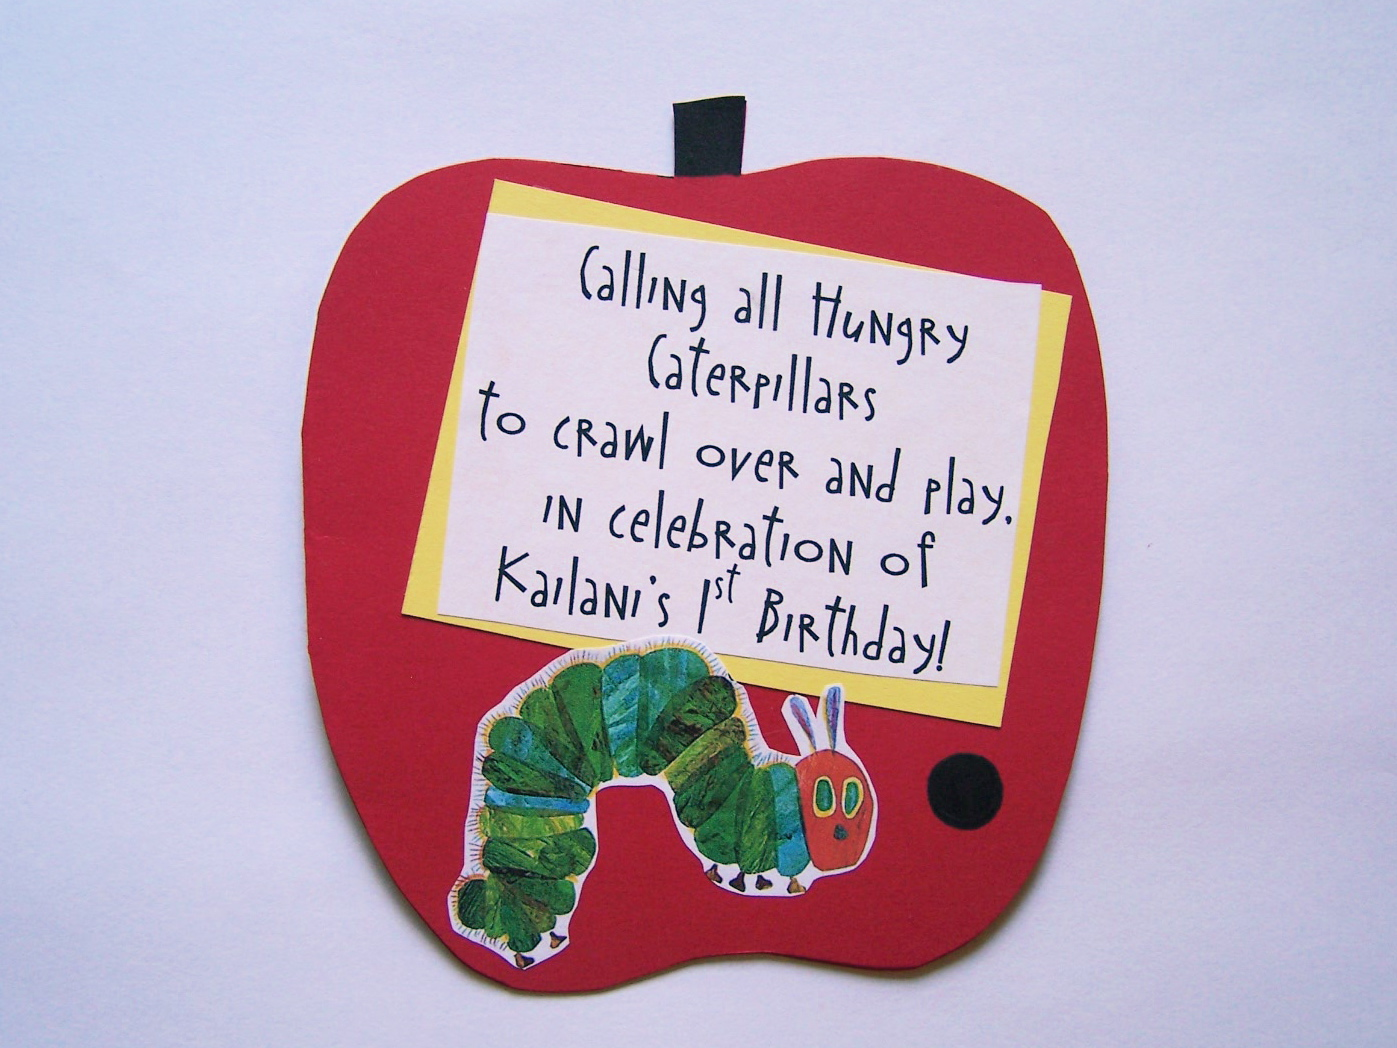 Party Accessories*: A Very Hungry Caterpillar Birthday